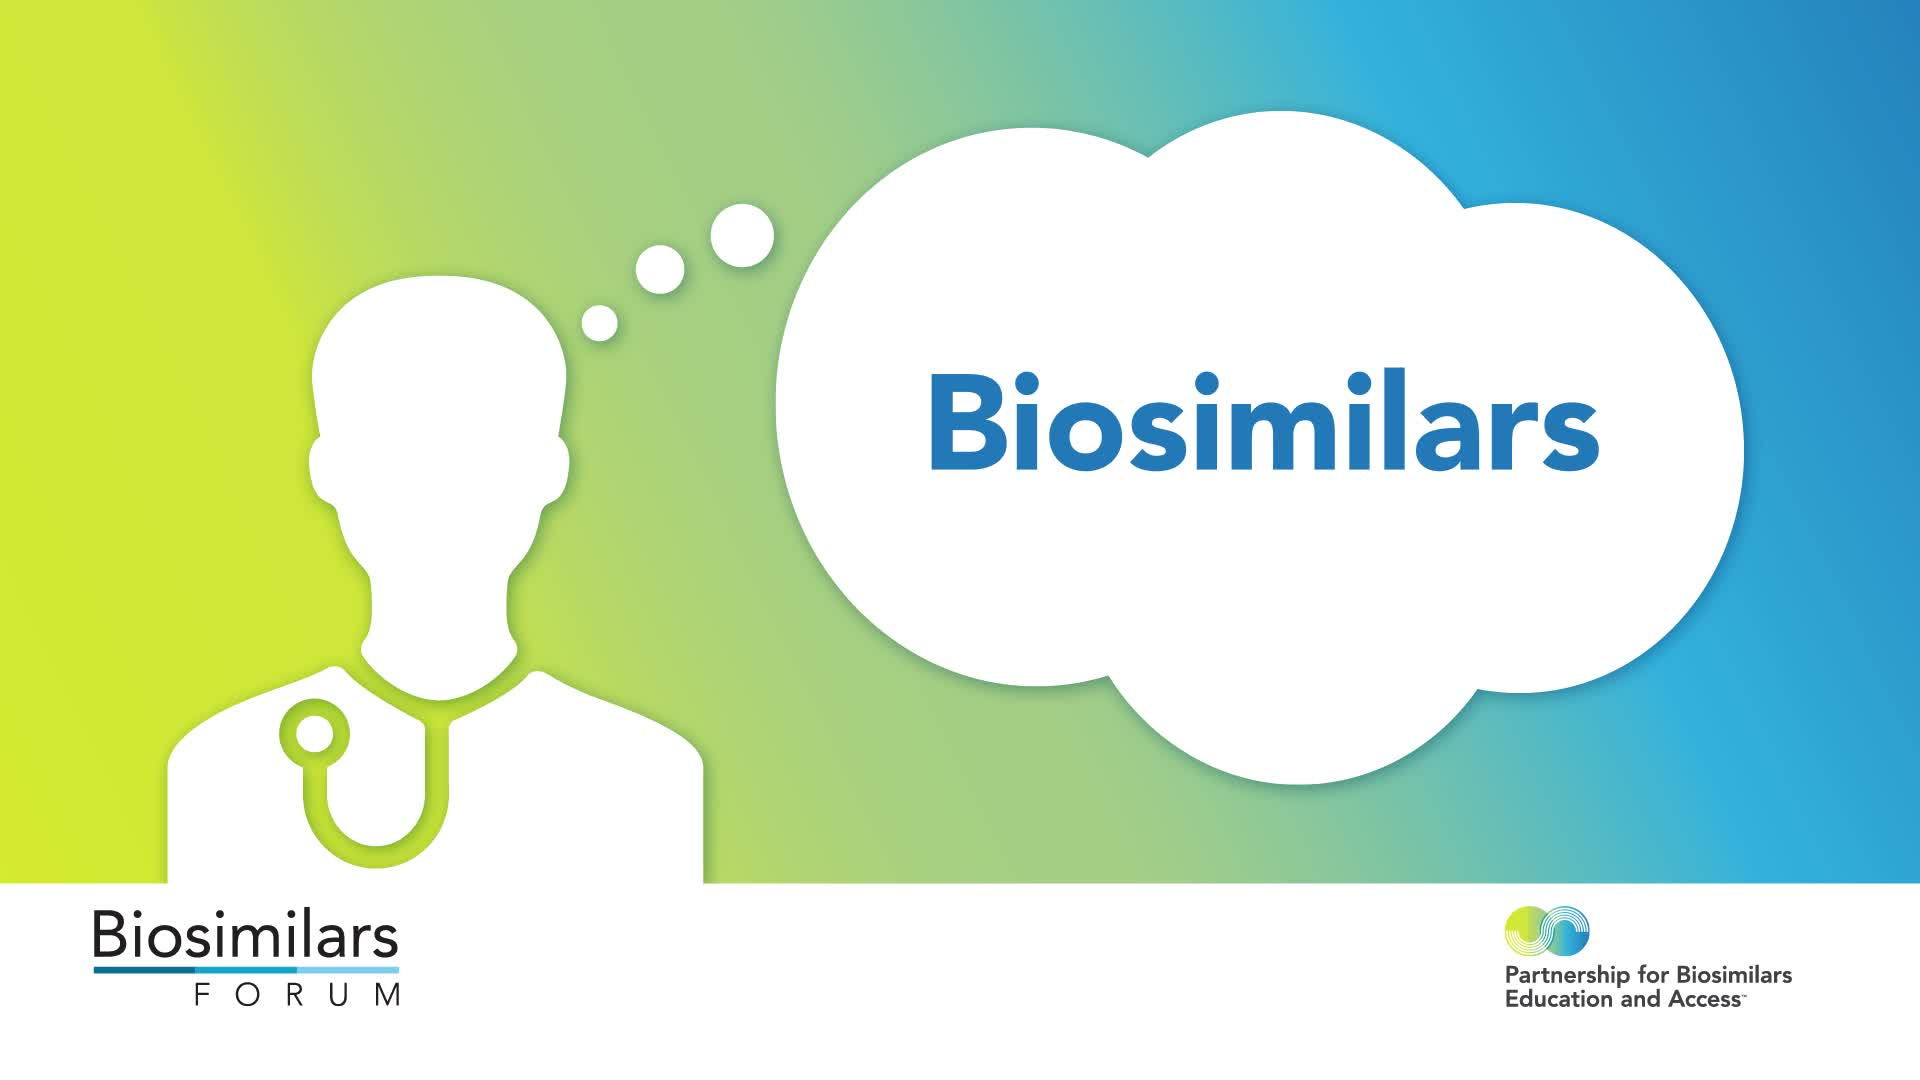 The Biosimilars Forum published a survey that demonstrates high awareness of biosimilars as well as a need for increased biosimilars education